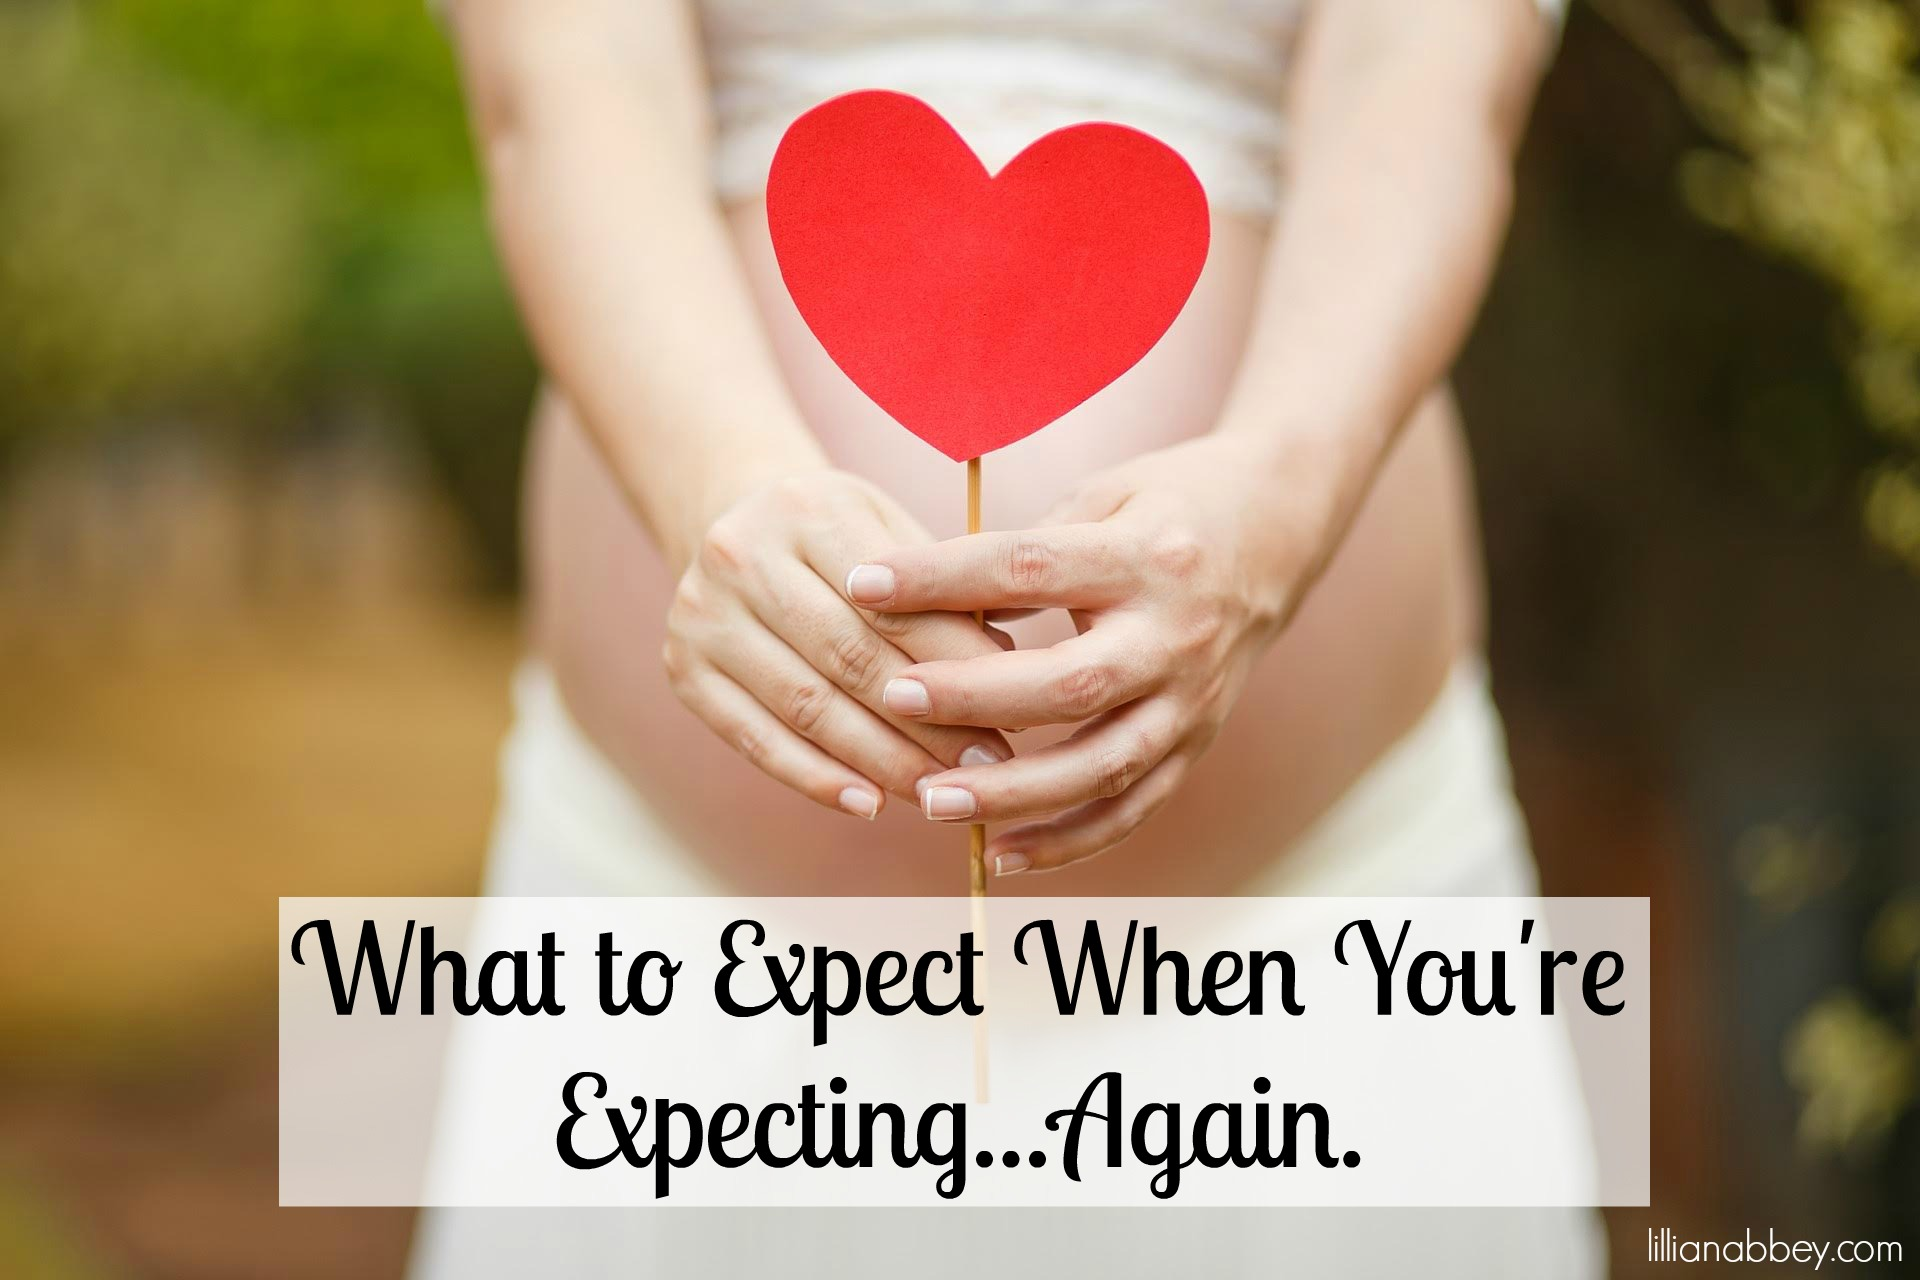 What to Expect When You're Expecting...Again